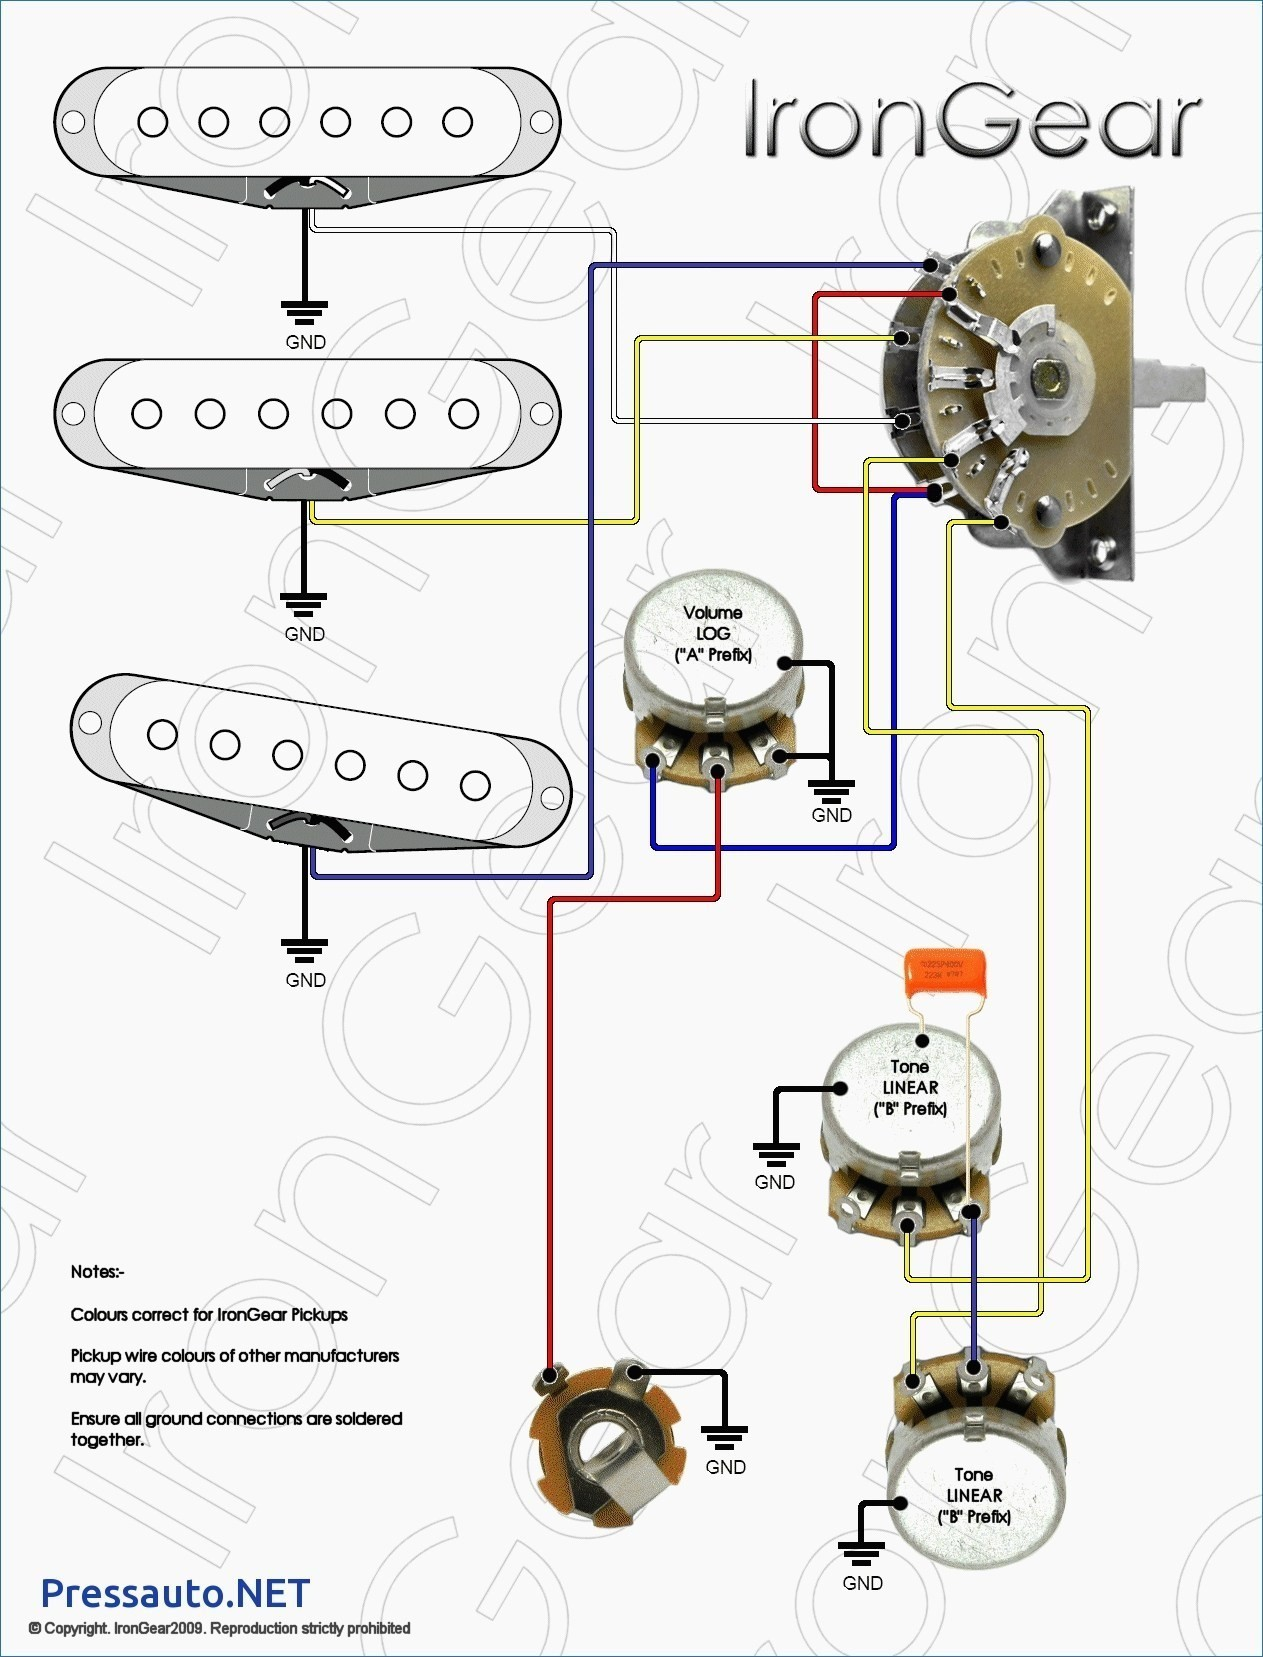 Hagstrom B Wiring Diagram. Carvin Wiring Diagram, Rickenbacker ... on meyer wiring diagram, ernie ball wiring diagram, danelectro wiring diagram, epiphone wiring diagram, rickenbacker wiring diagram, mitchell wiring diagram, gretsch wiring diagram, dimarzio wiring diagram, gator wiring diagram, bass boat wiring diagram, jackson wiring diagram, michael kelly wiring diagram, taylor wiring diagram, jbl wiring diagram, harmony wiring diagram, carvin wiring diagram, schecter wiring diagram, krank wiring diagram, emg wiring diagram, mosrite wiring diagram,